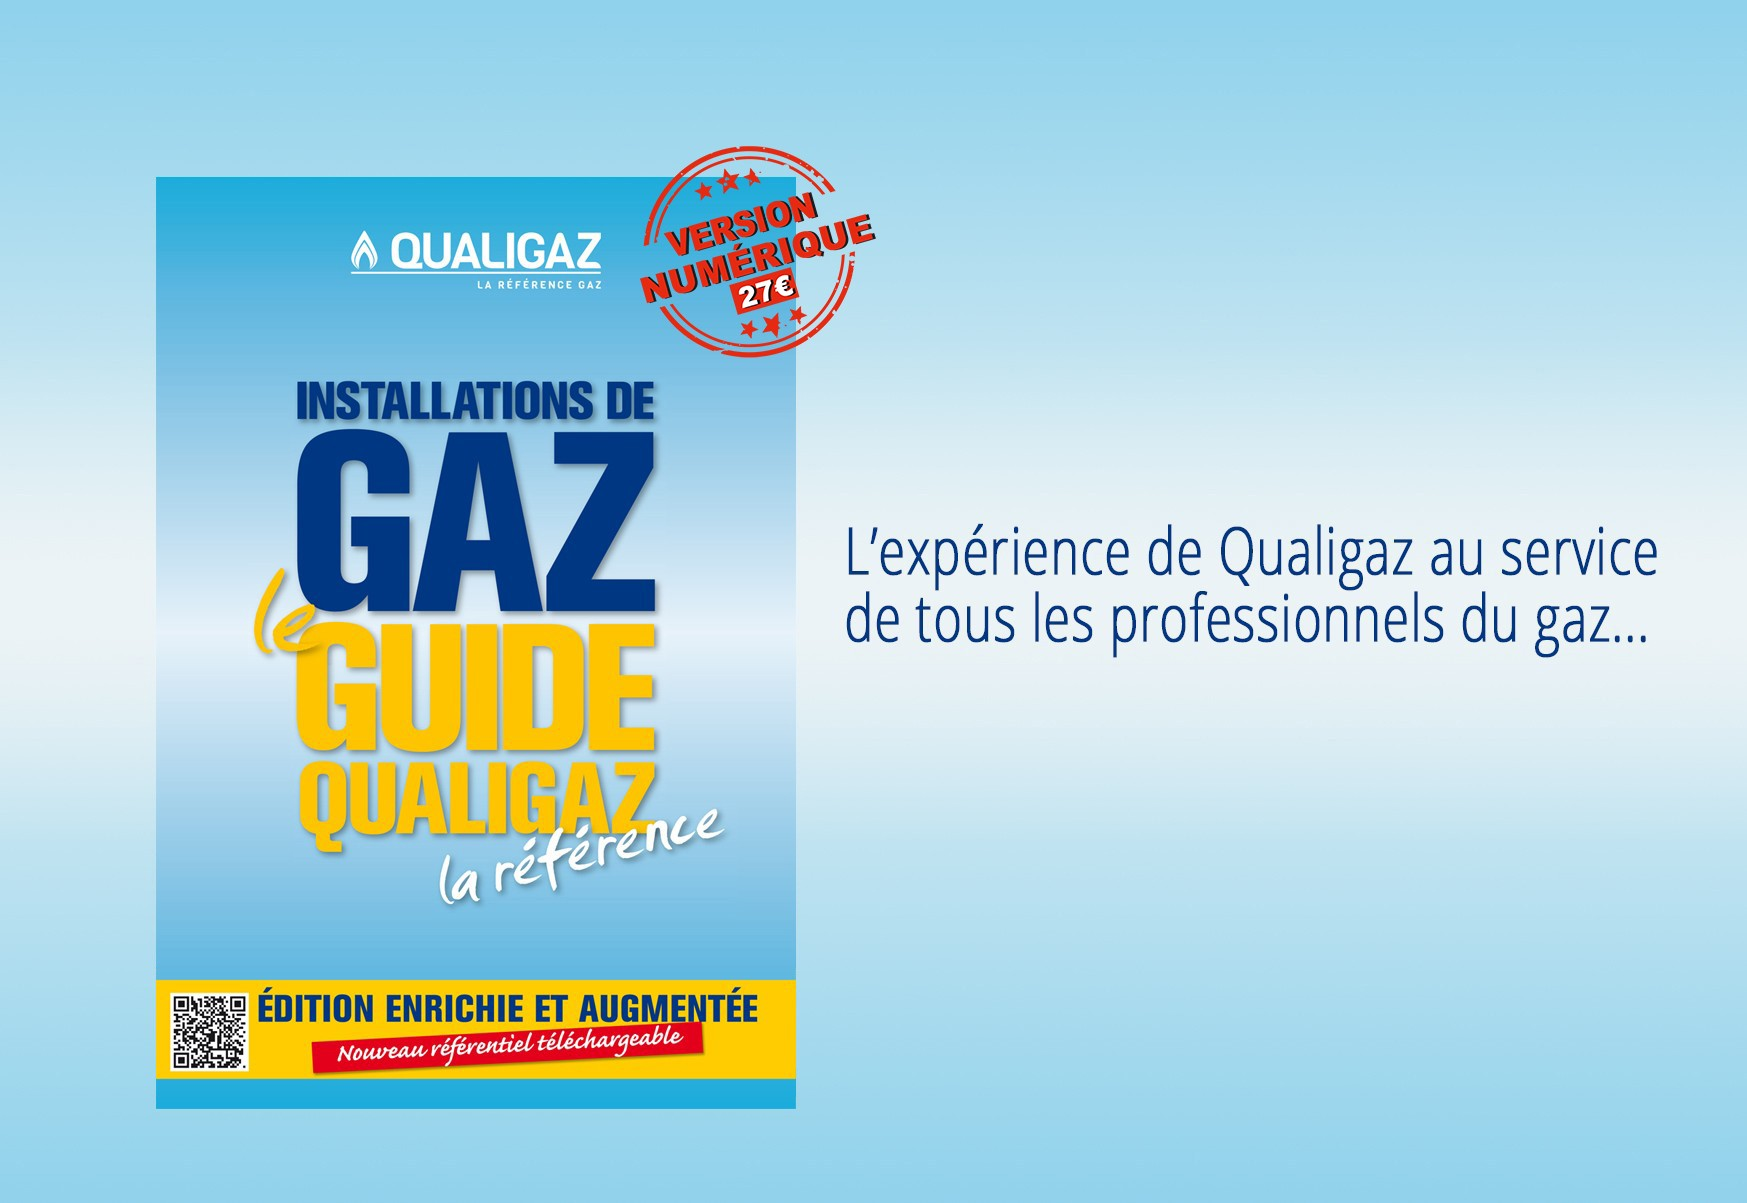 Guide Qualigaz - Installations de gaz 2016 - Version numérique